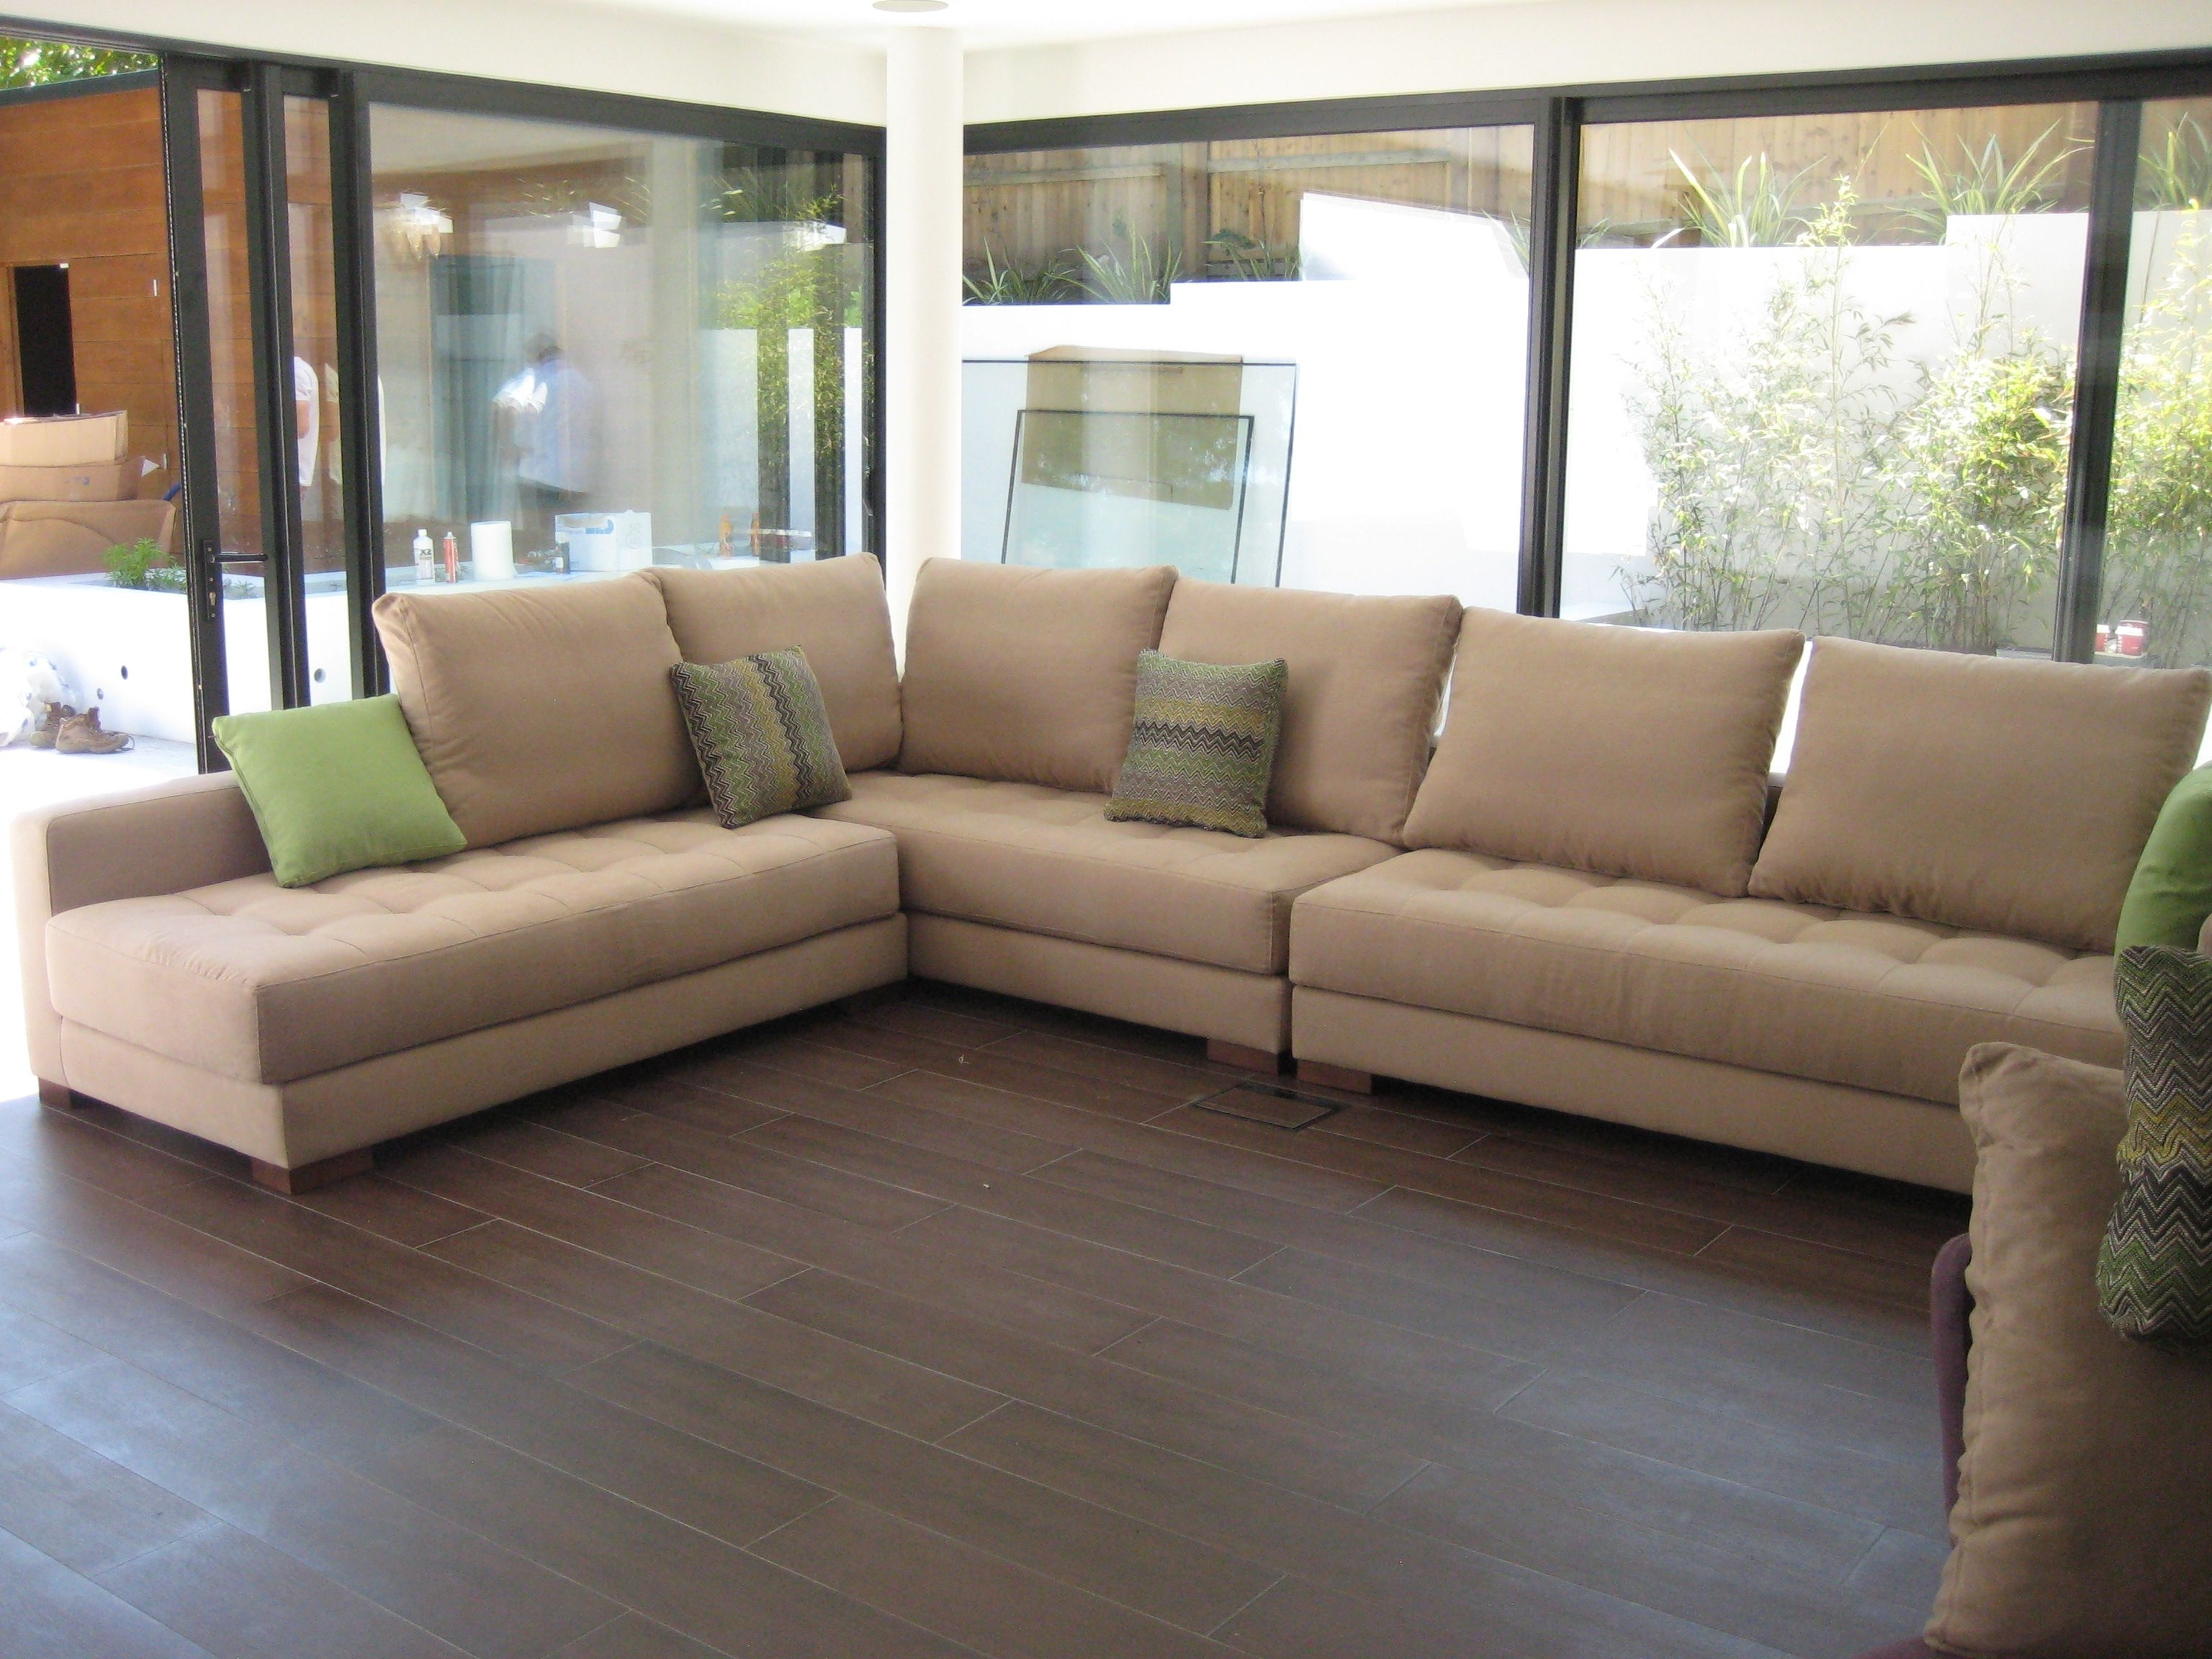 Newest Used Sectional Sofas With Regard To Yecla Sectional Sofa Modules – In Romo Linara Fabrics (View 5 of 15)